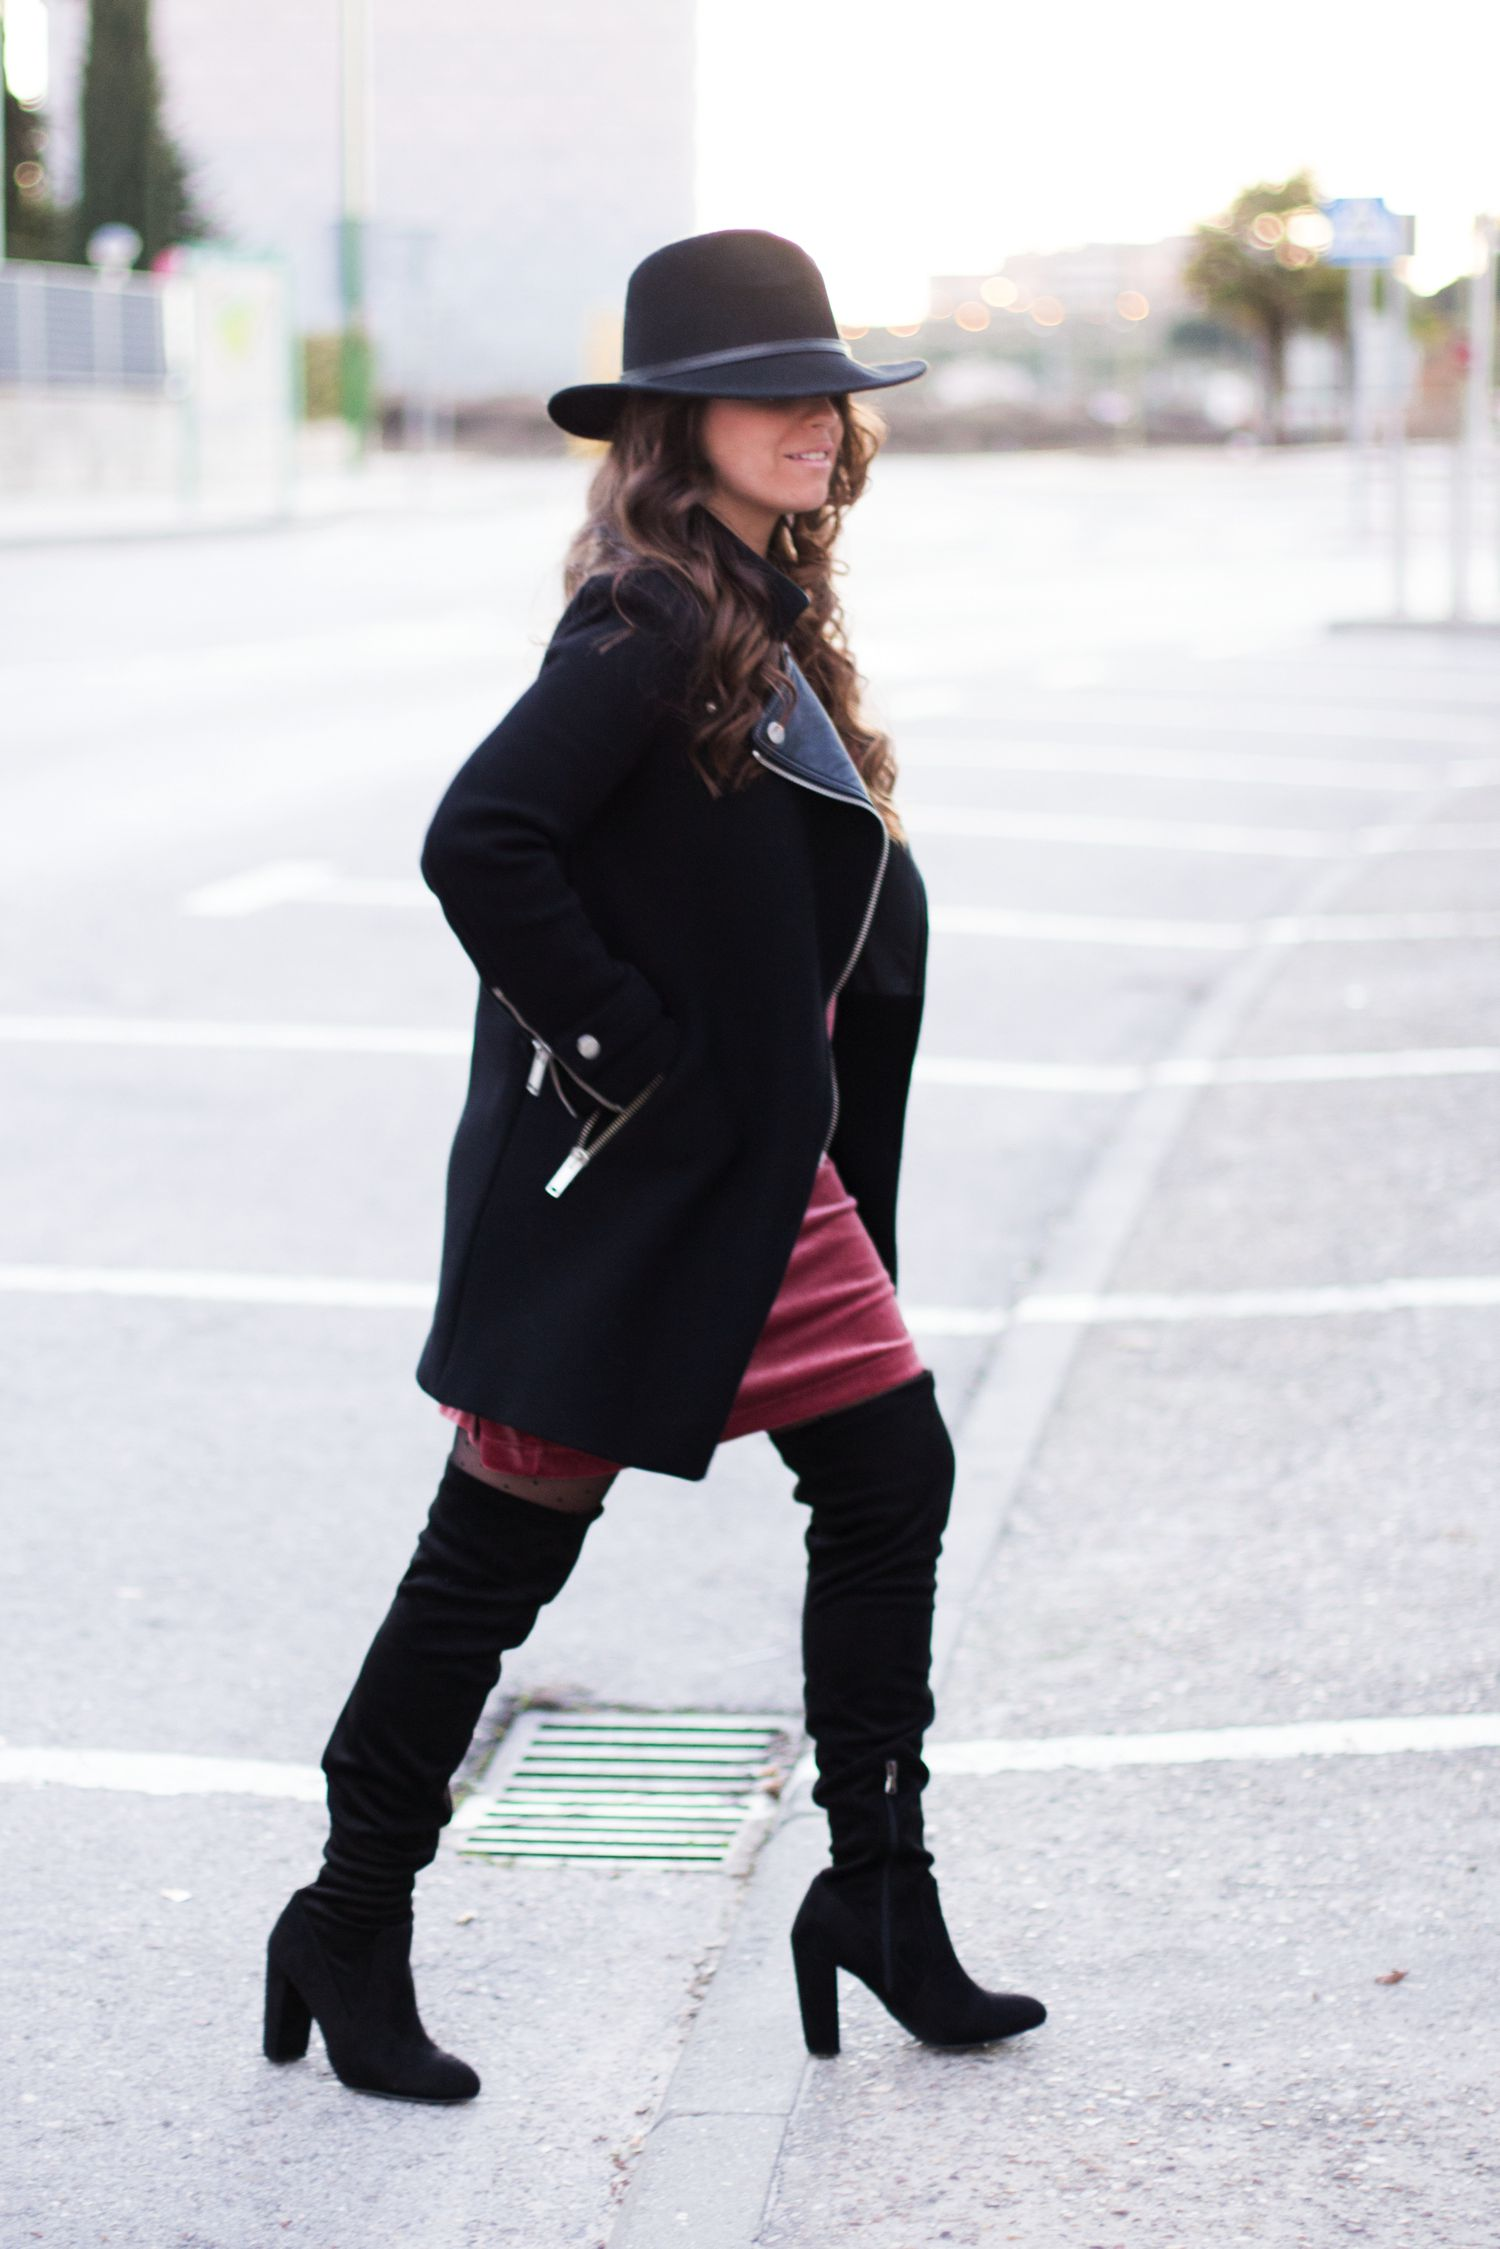 loreto_made_in_style_ovs_heel_boots_velvet_burgundy_lace_dress_-36